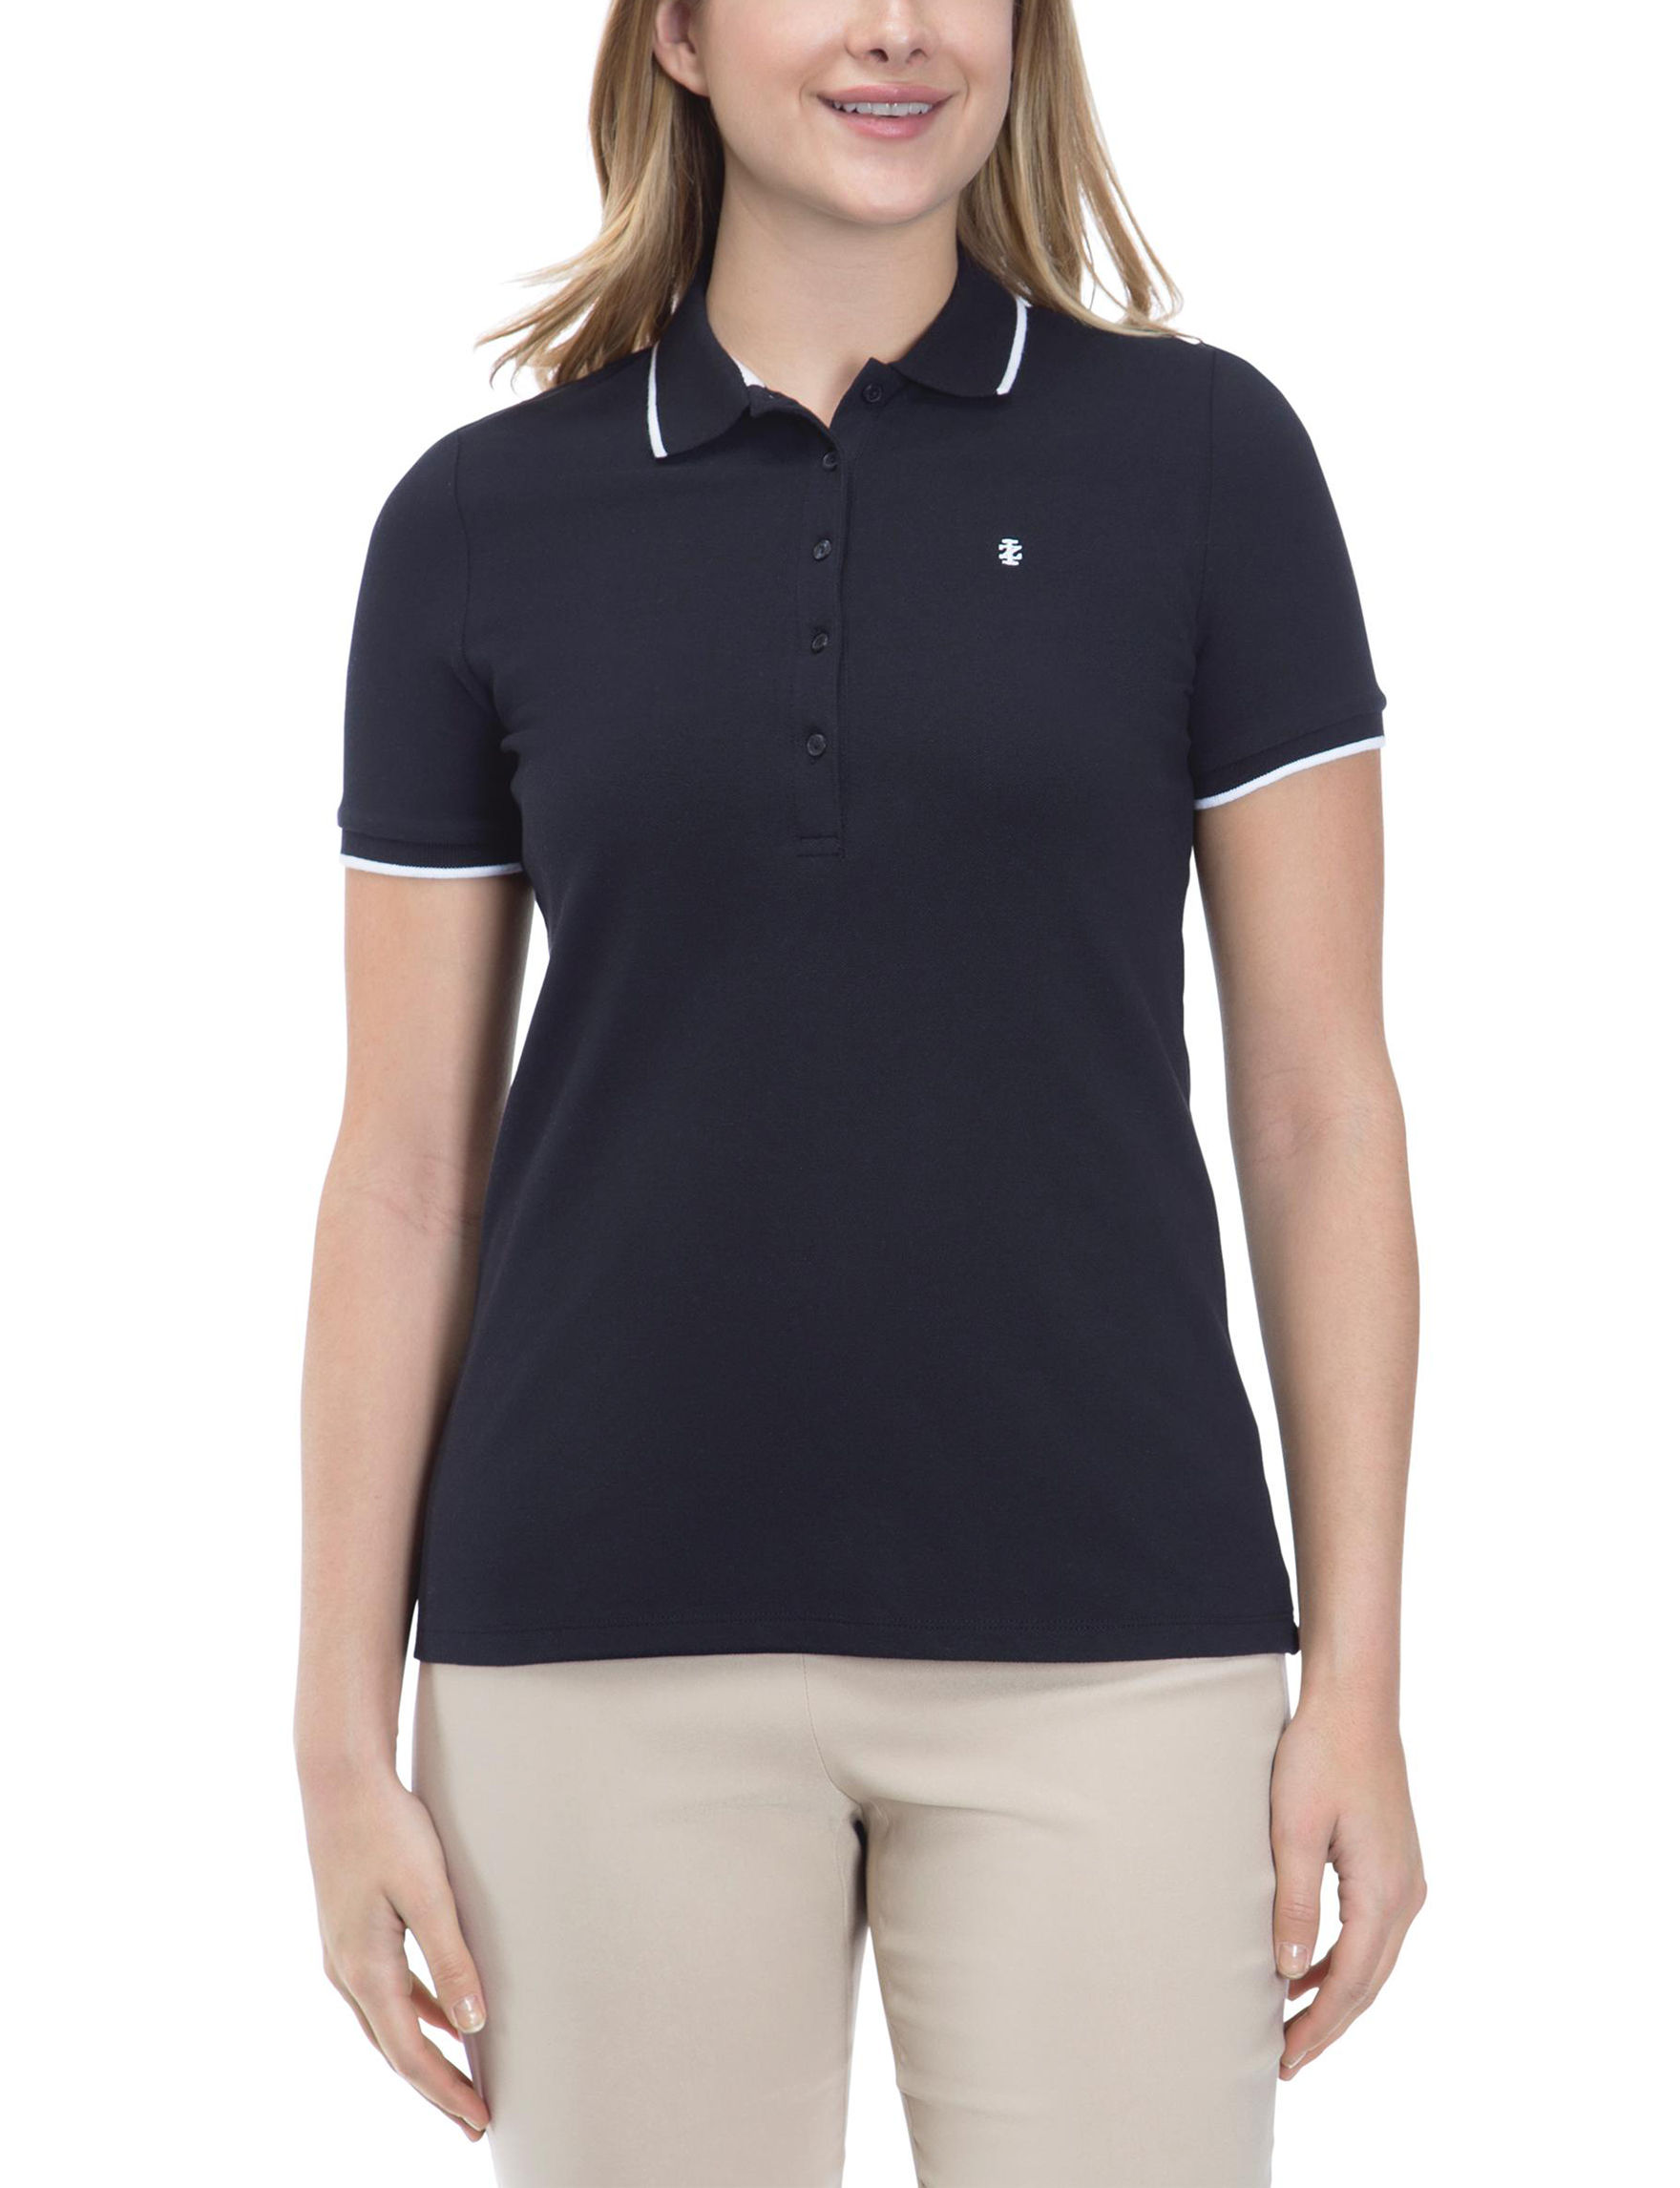 Izod Black Shirts & Blouses